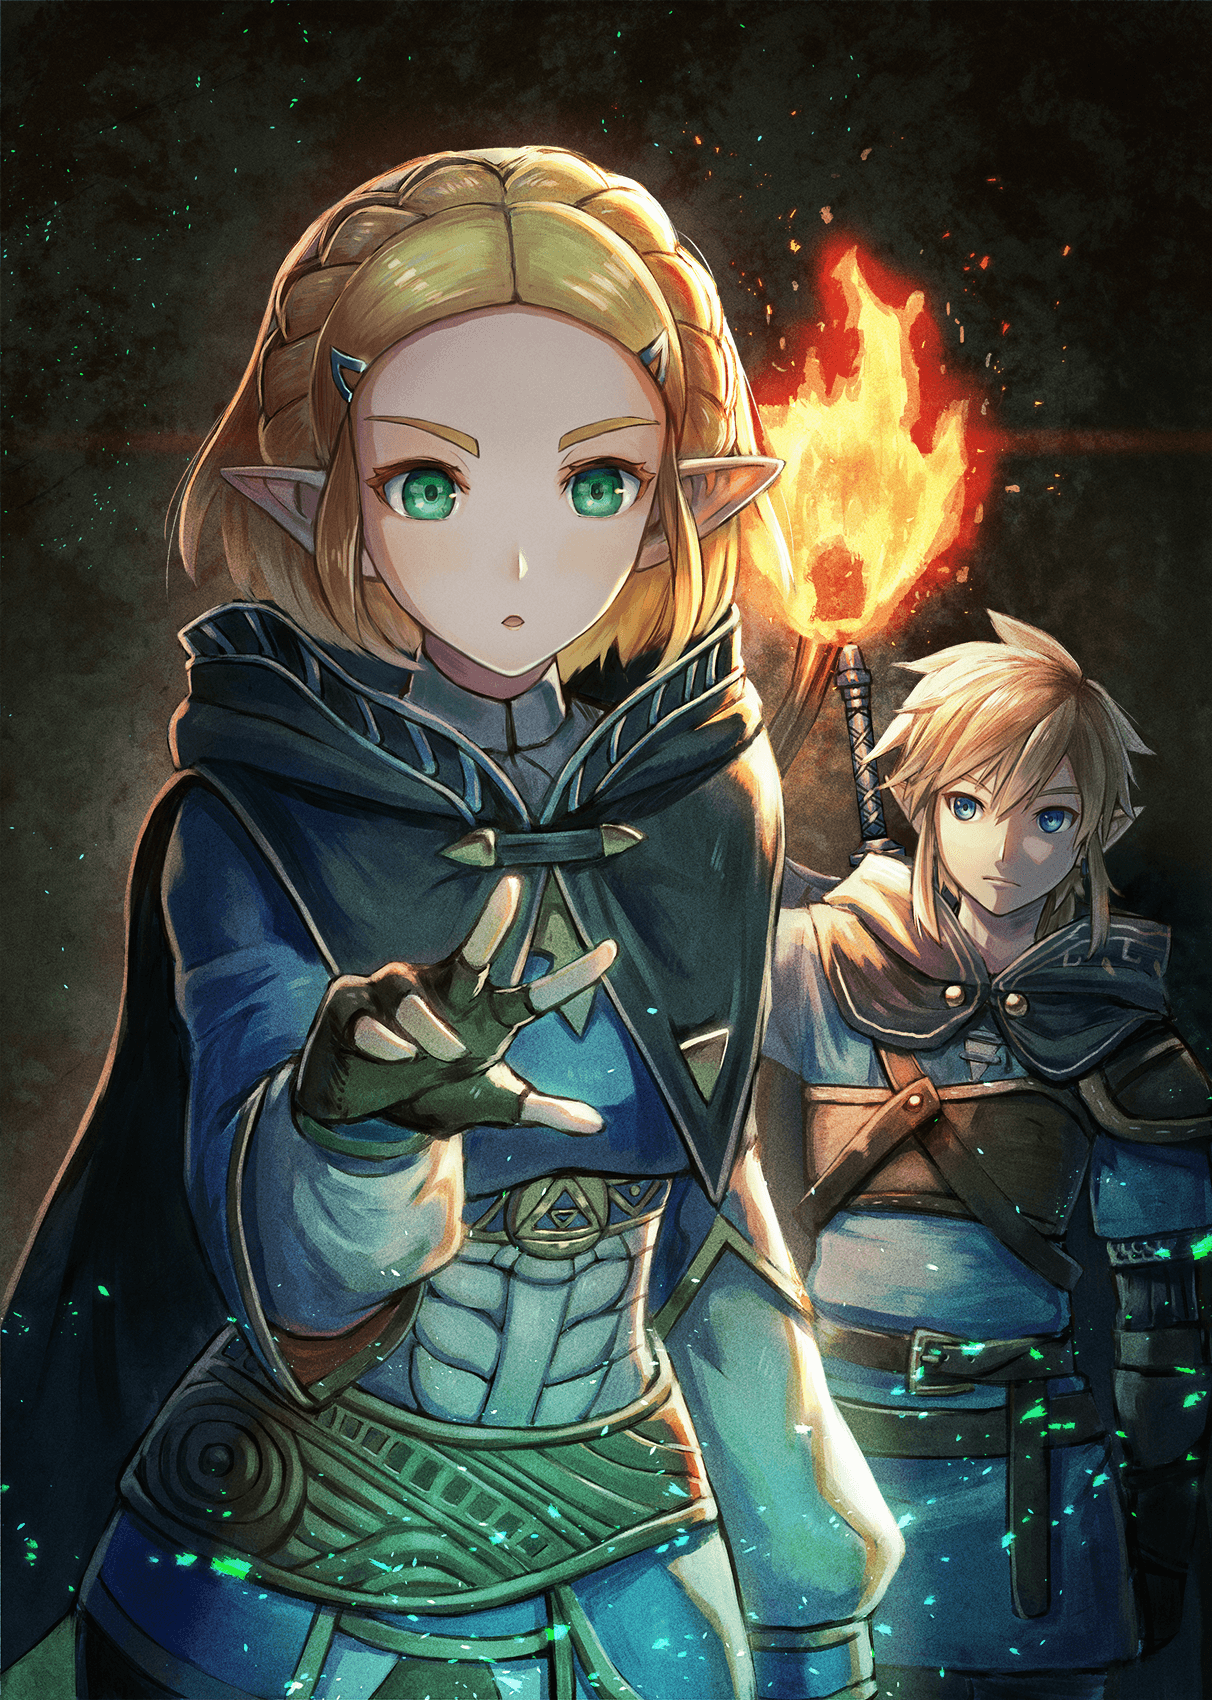 Legend Of Zelda Breath Of The Wild Sequel Art Princess Zelda And Link Exploring Botw 2 Legend Of Zelda Memes Legend Of Zelda Breath Zelda Art